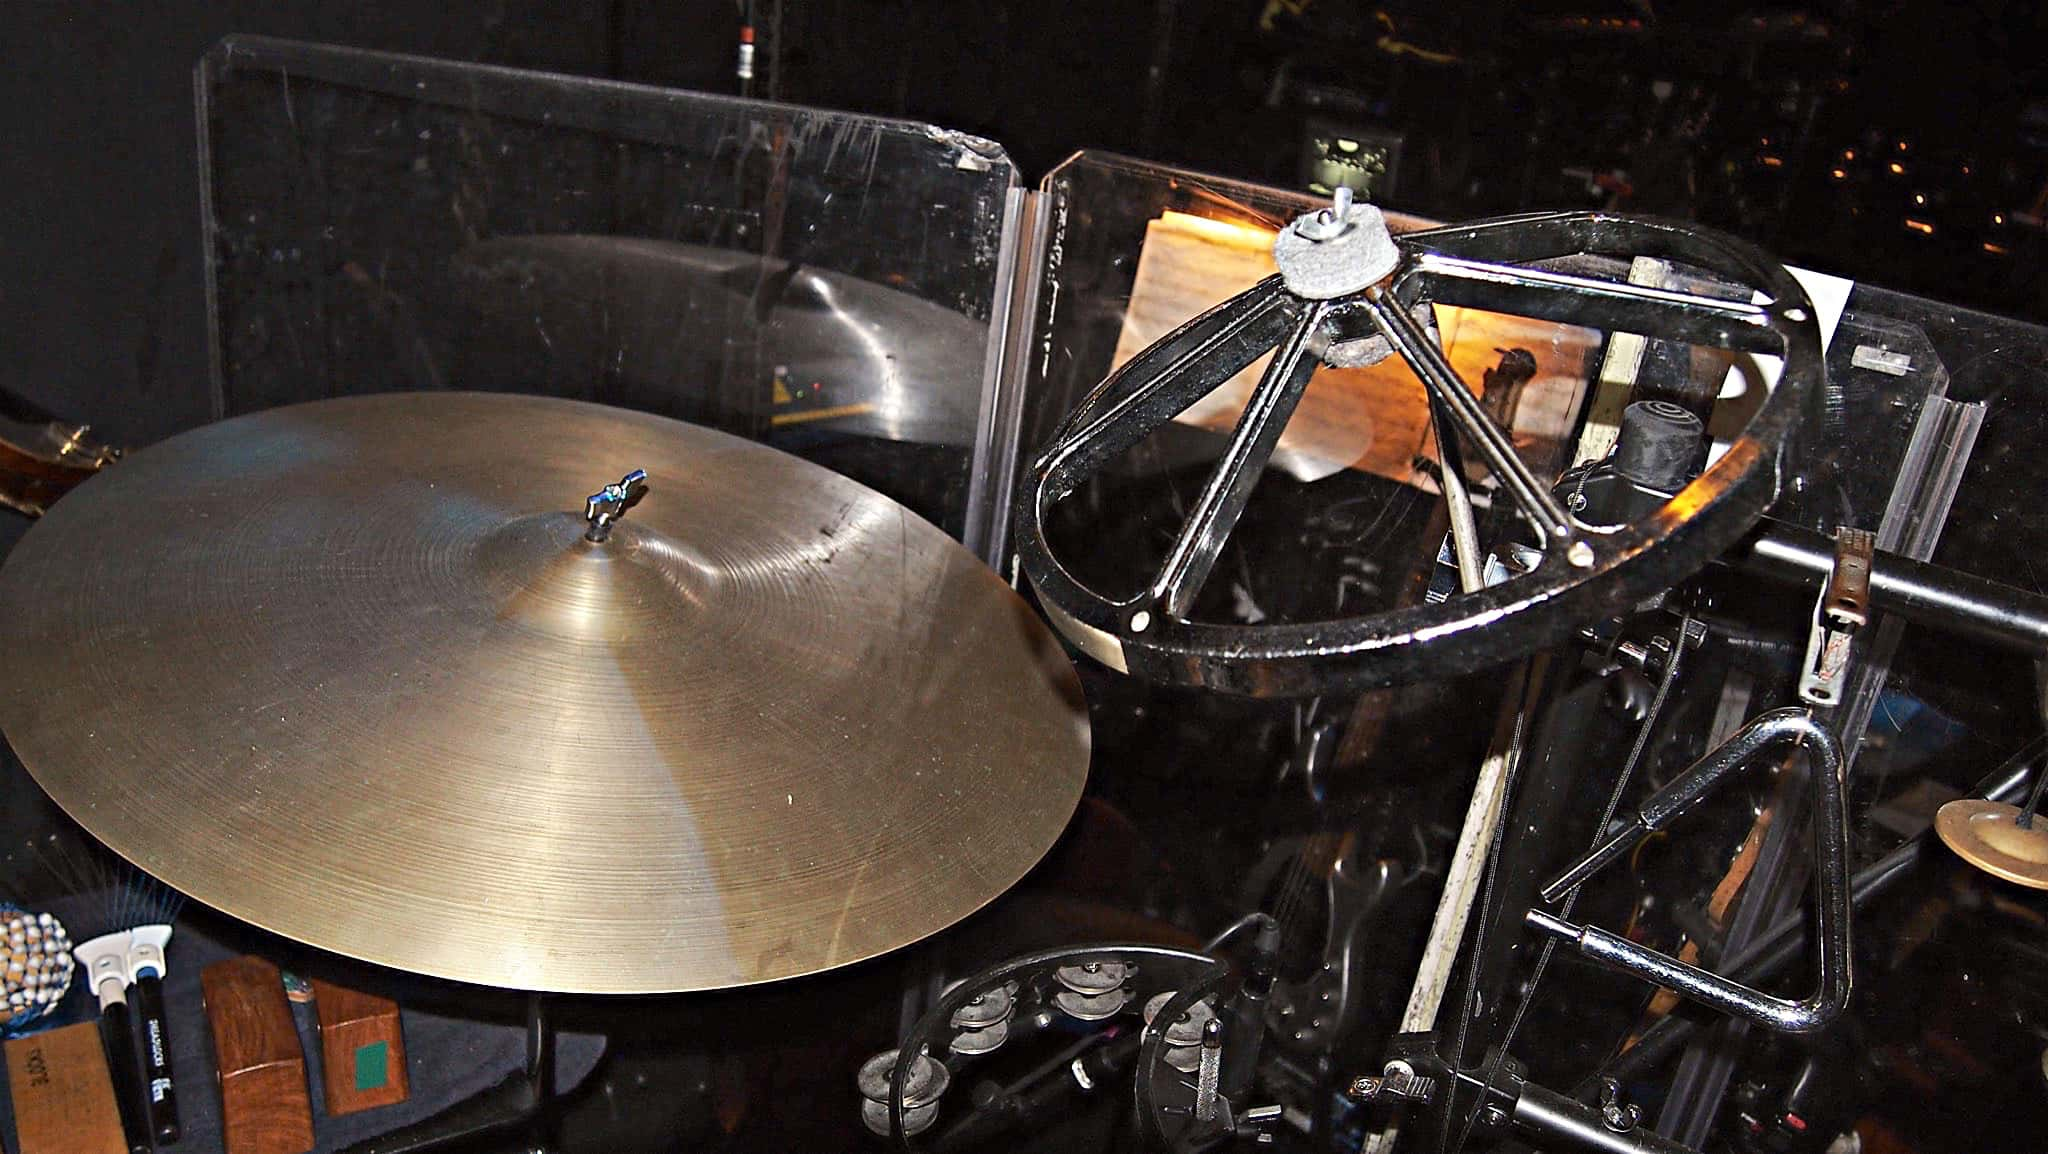 Paul Hansen's percussion setup for the National Tour of Wicked at the Paramount Theater in Seattle, Washington.